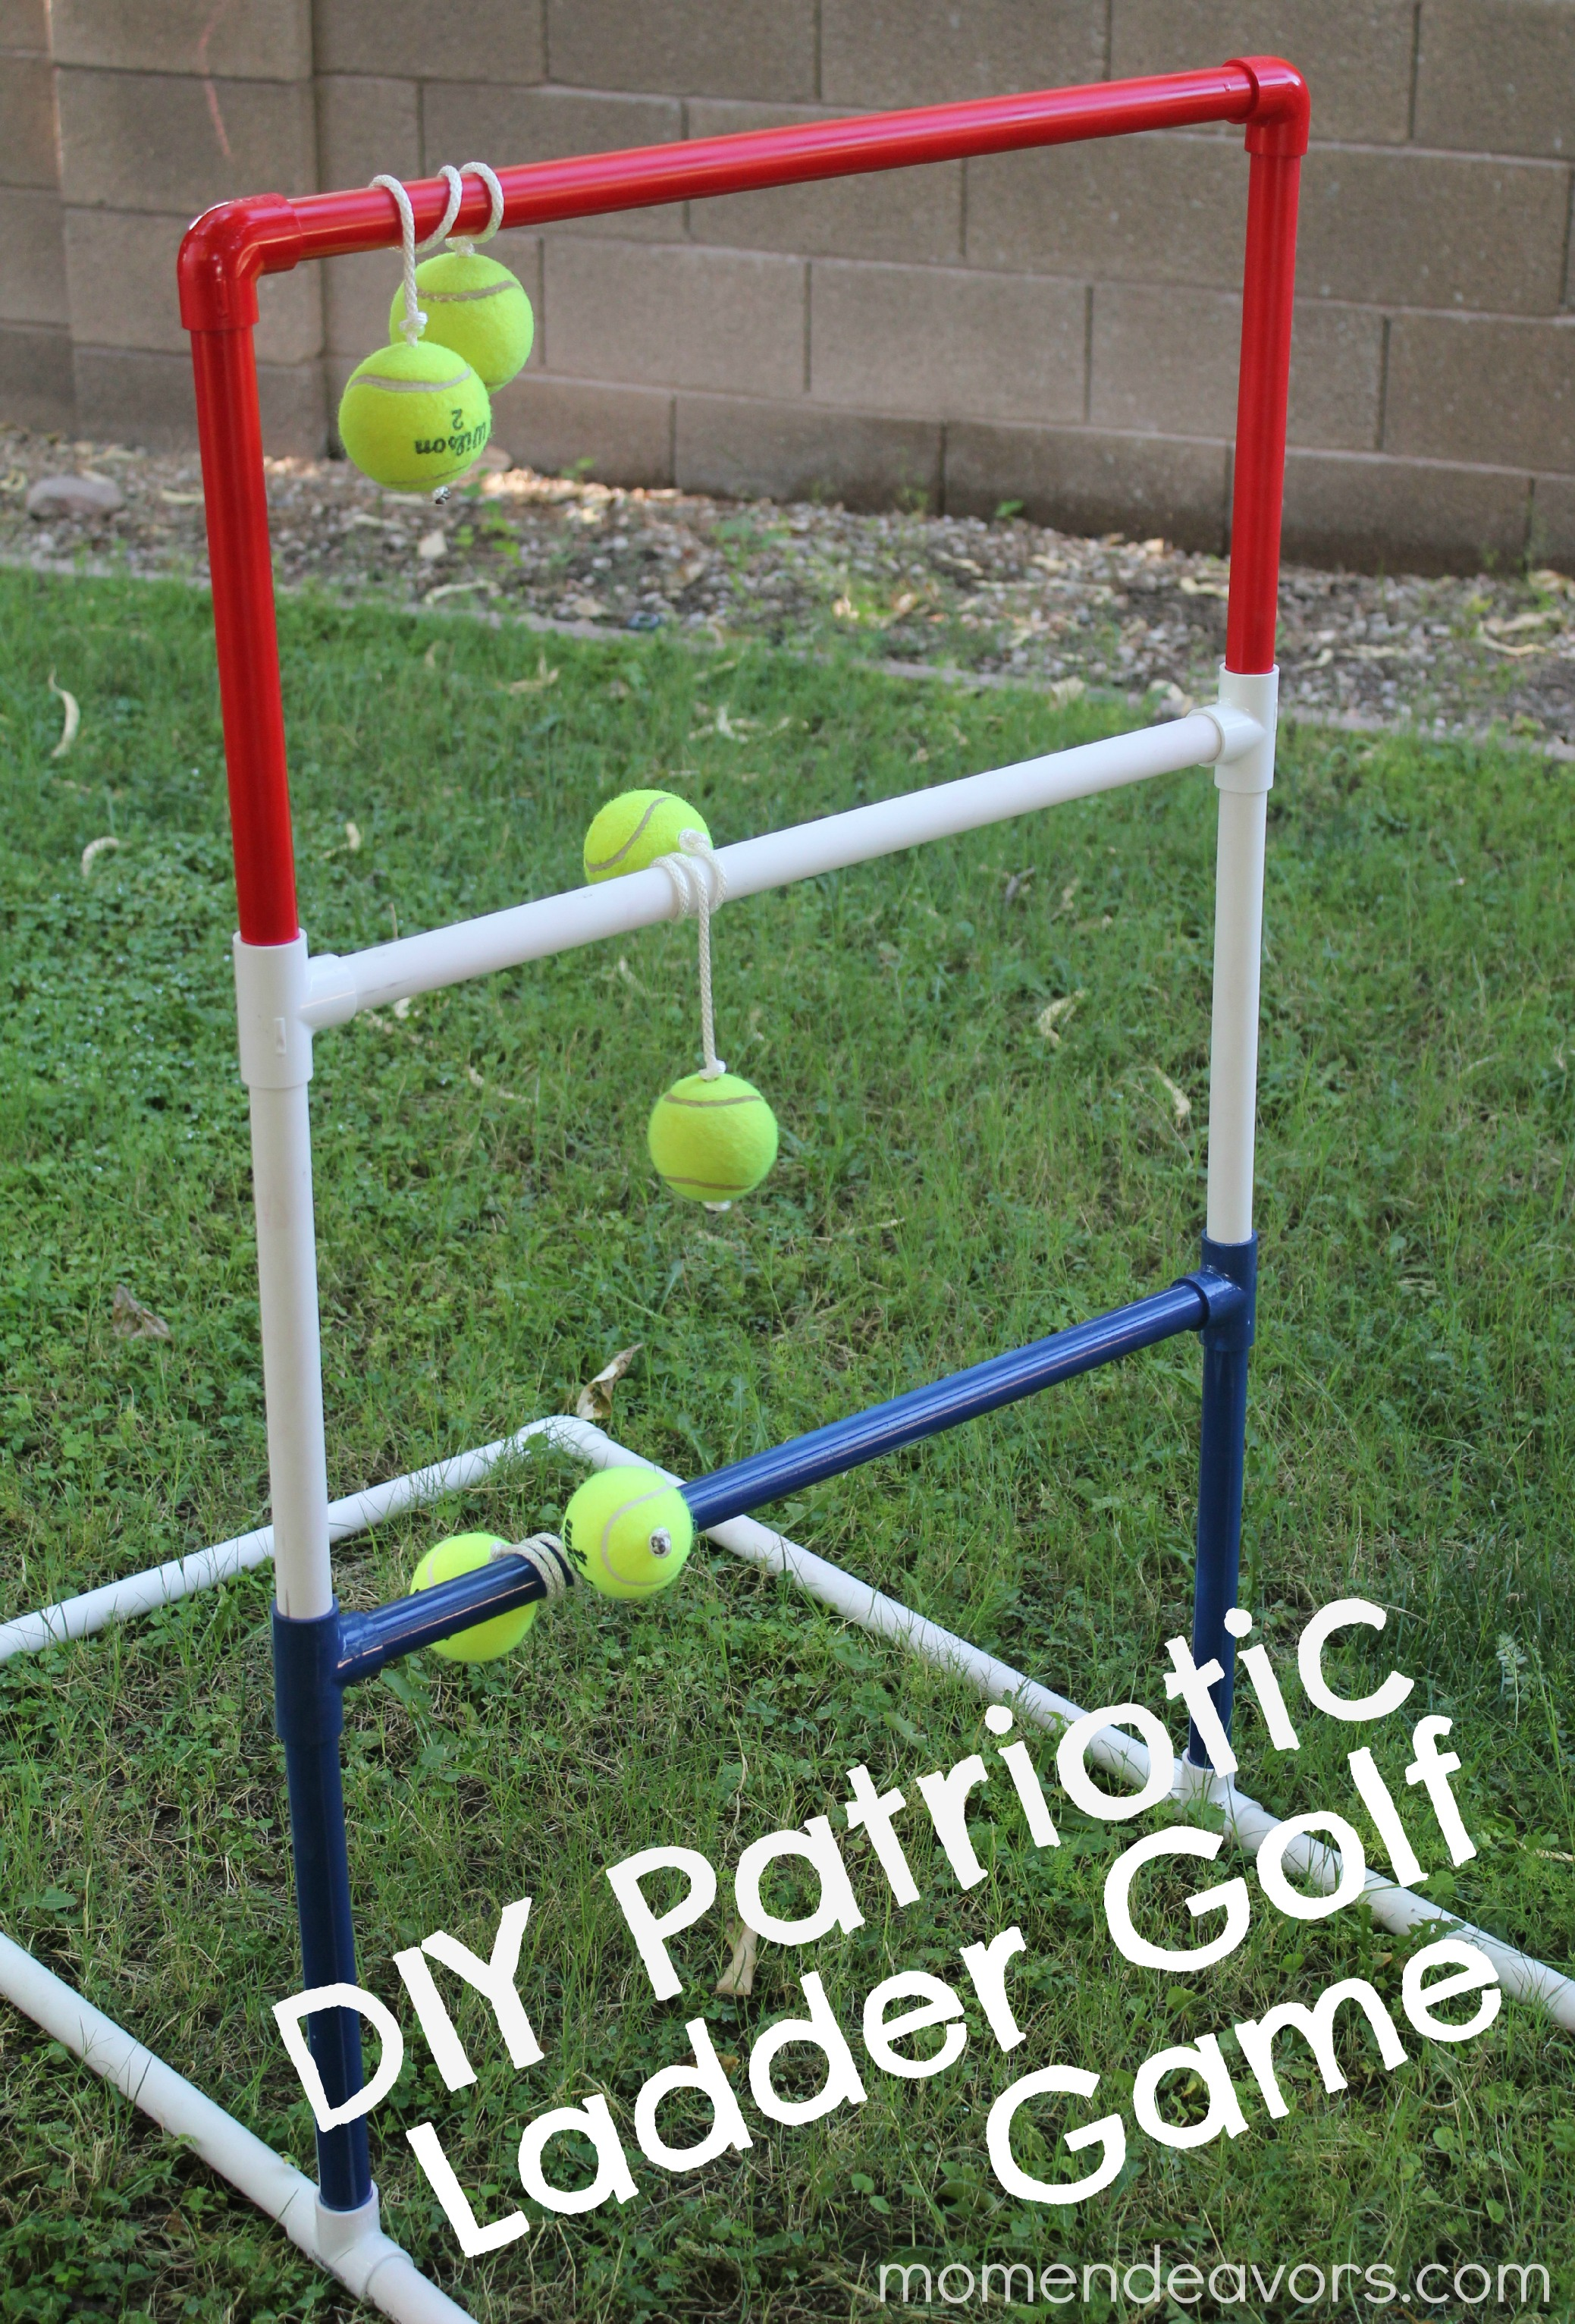 17 diy games for outdoor family fun diy patriotic ladder golf game1 solutioingenieria Gallery